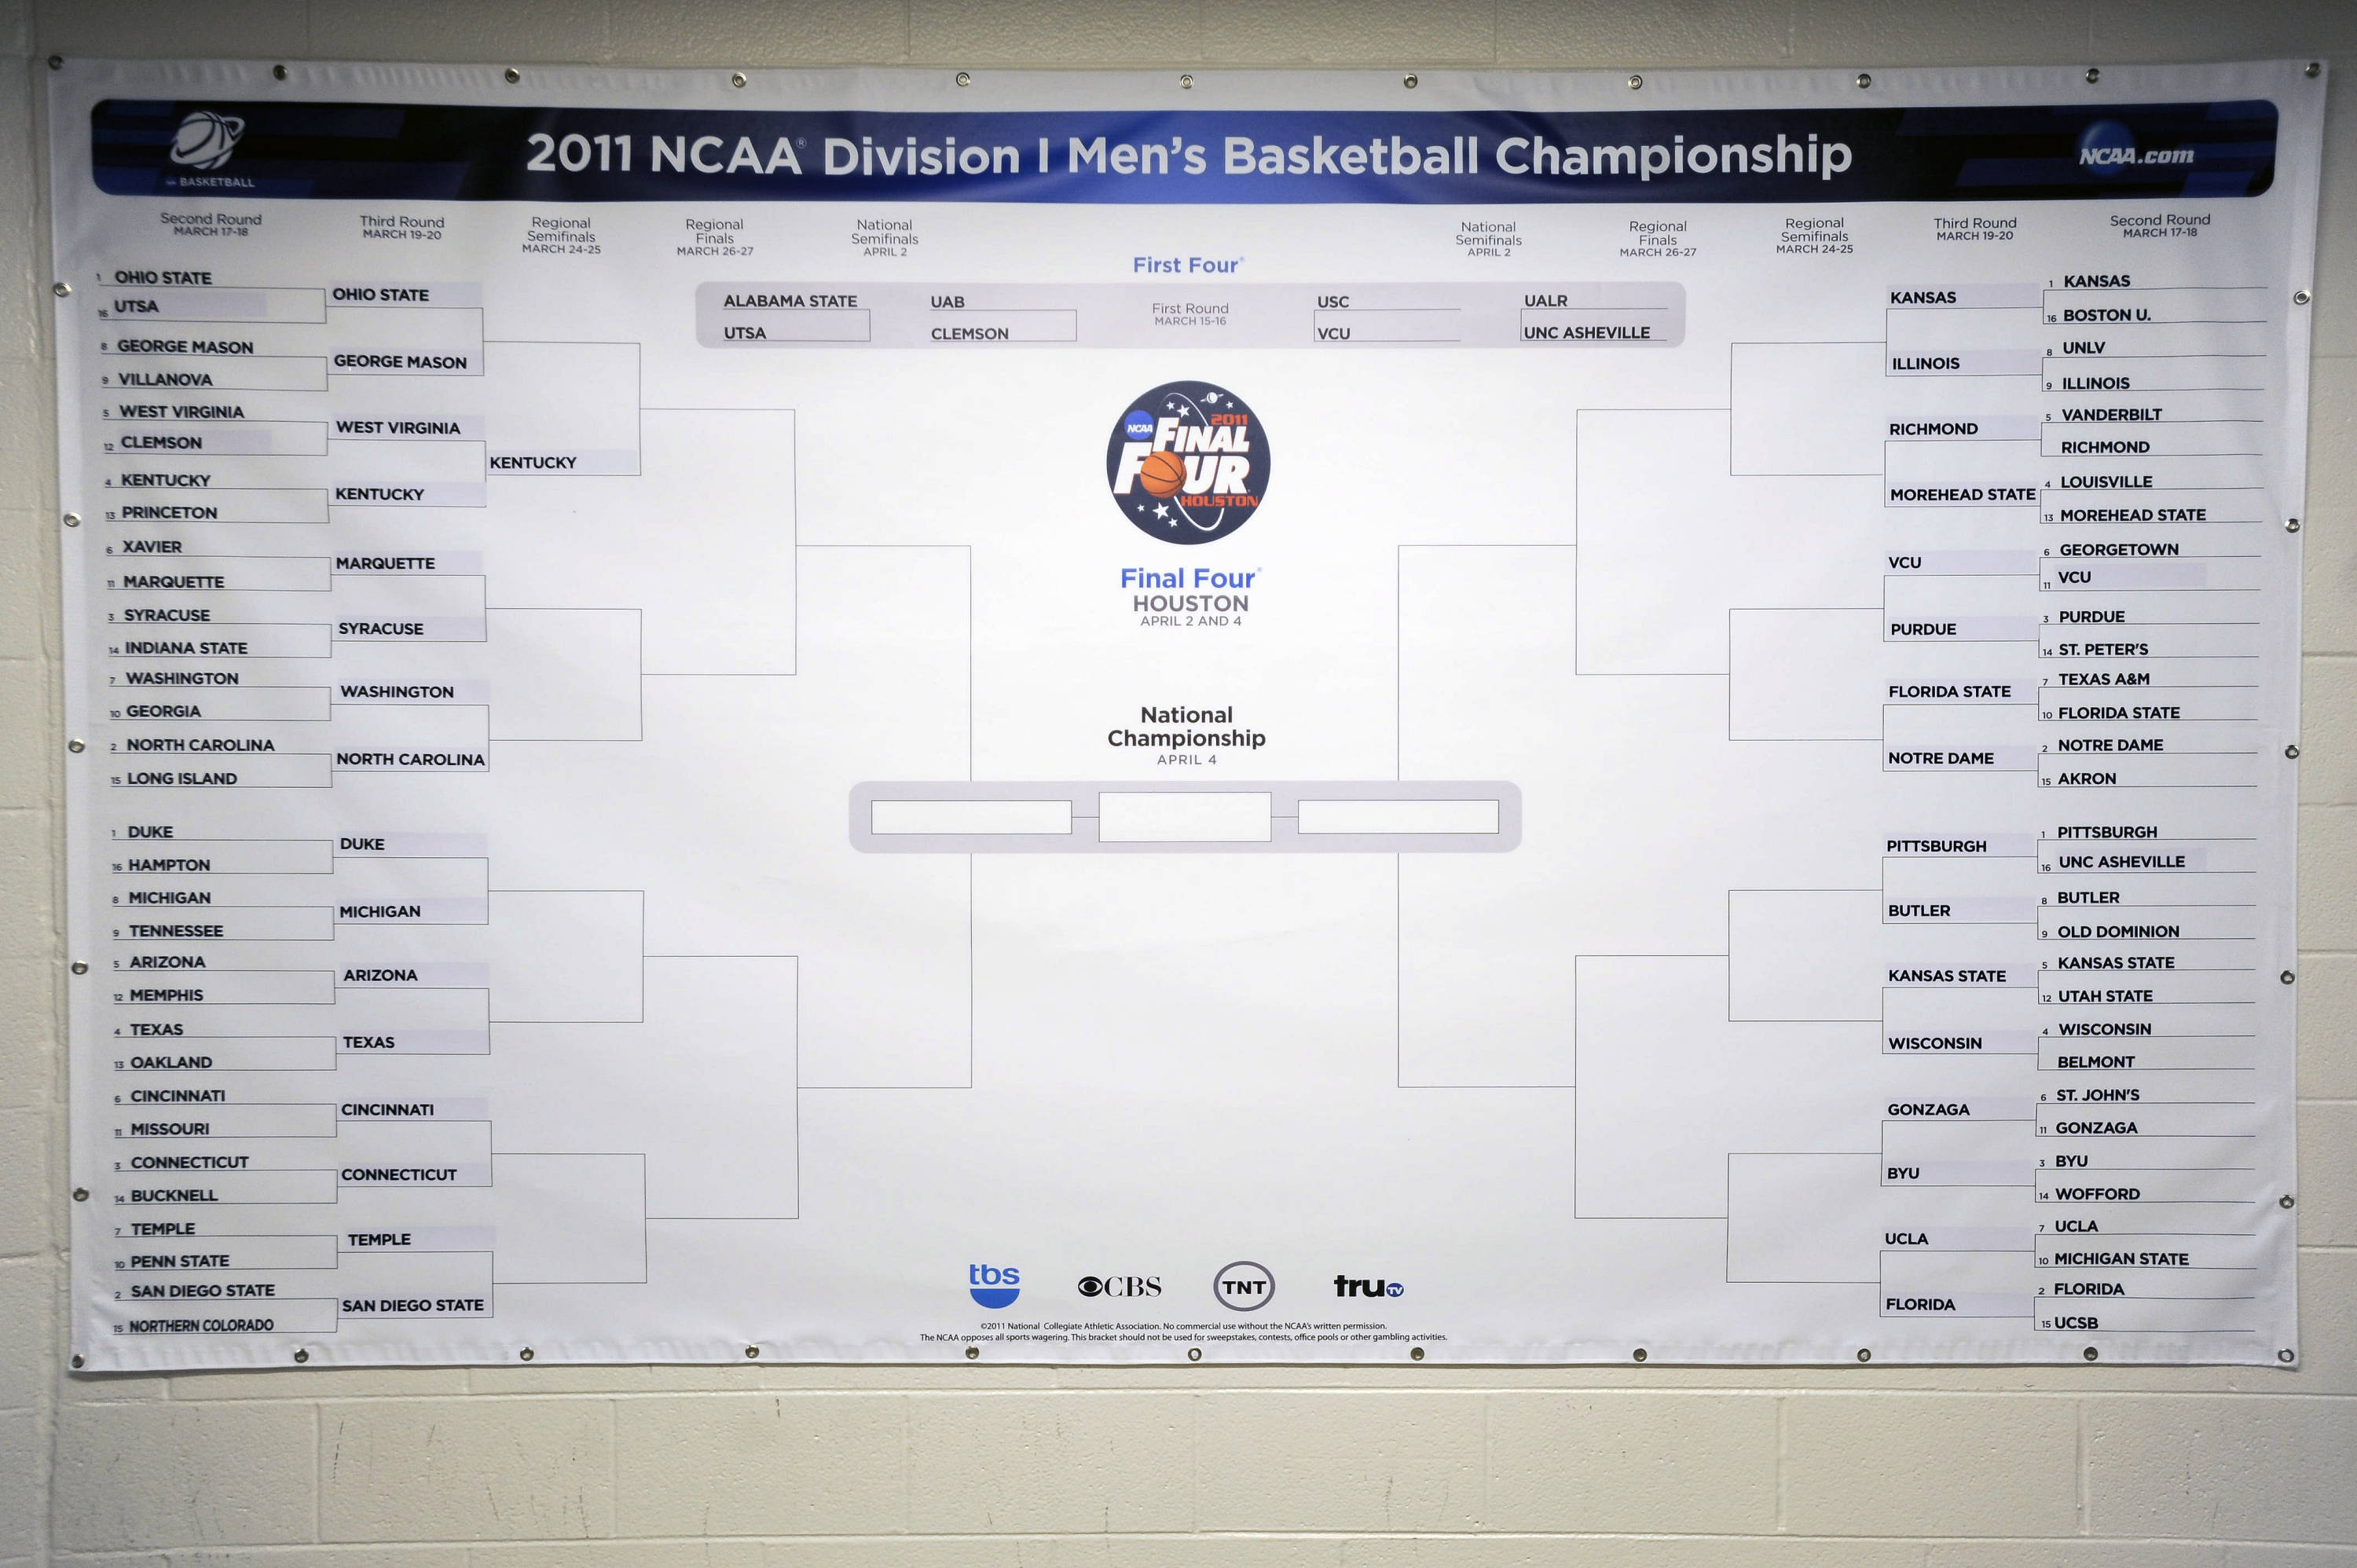 The NCAA Tournament bracket after the second round was completed.